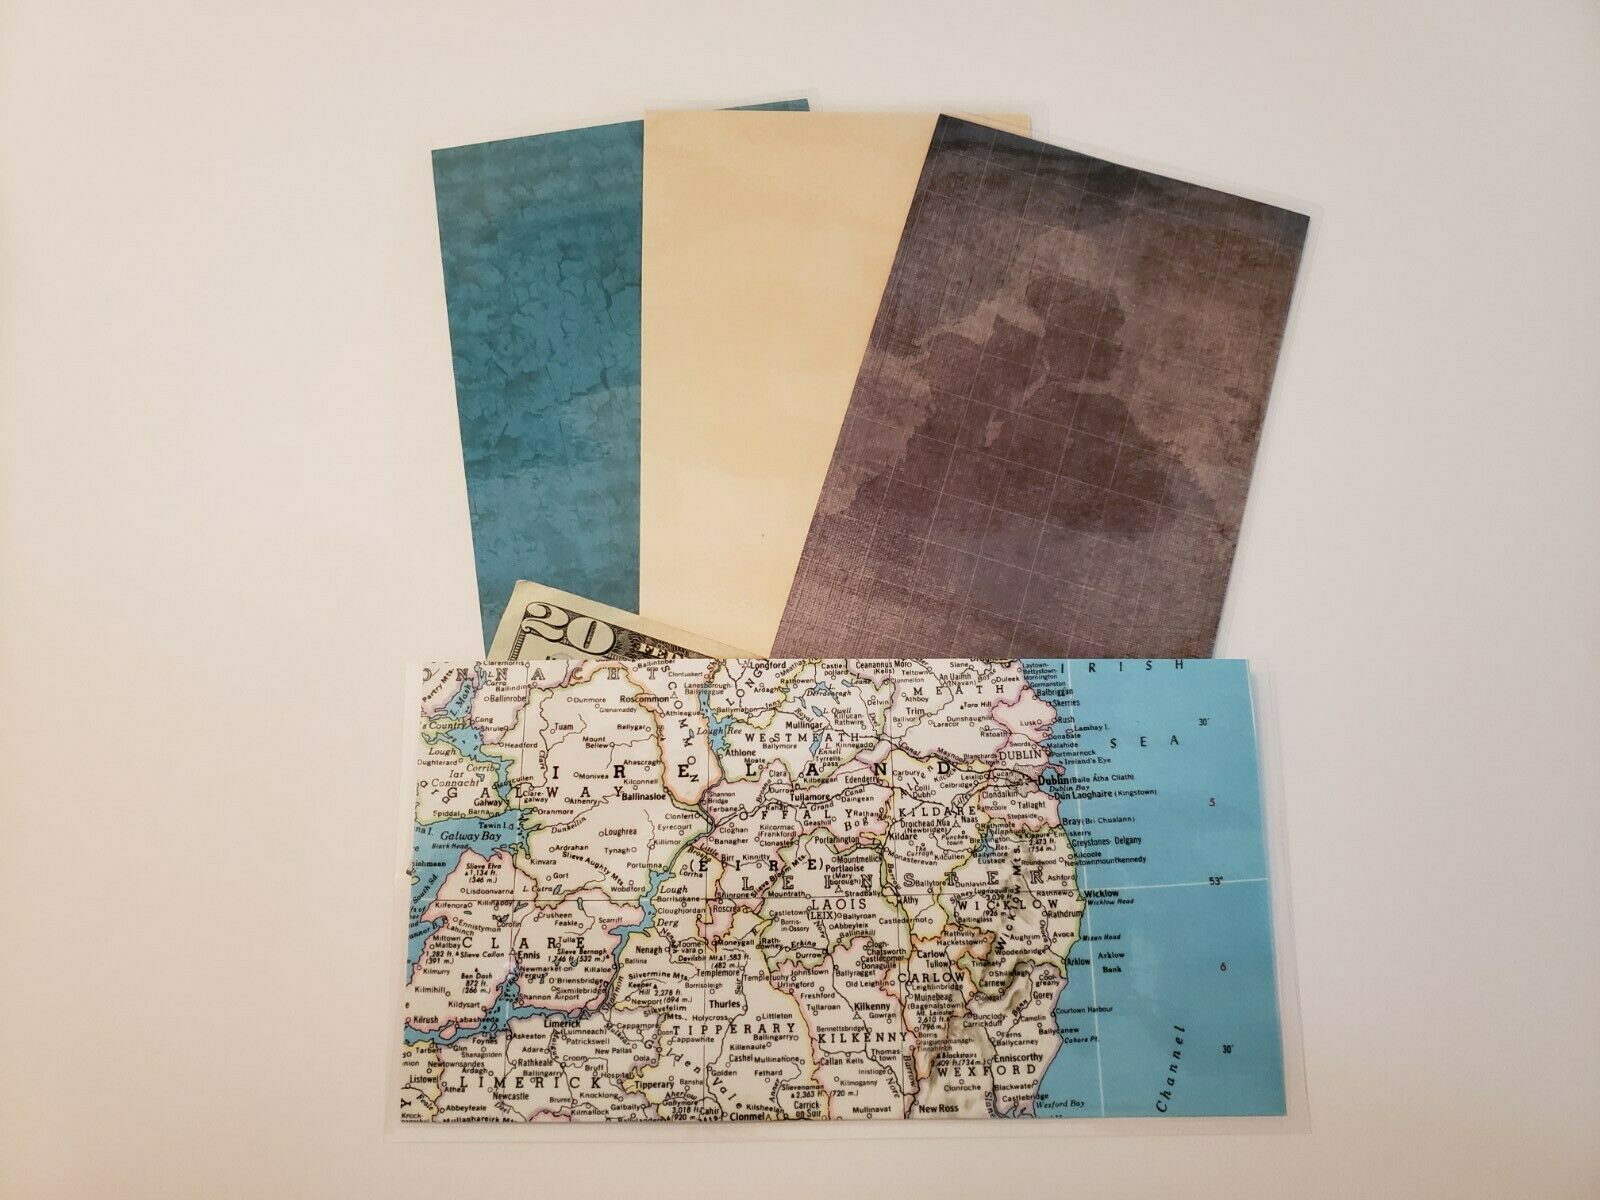 Cash Envelopes Budget System Dave Ramsey Inspired Wallet Stationary Maps #267